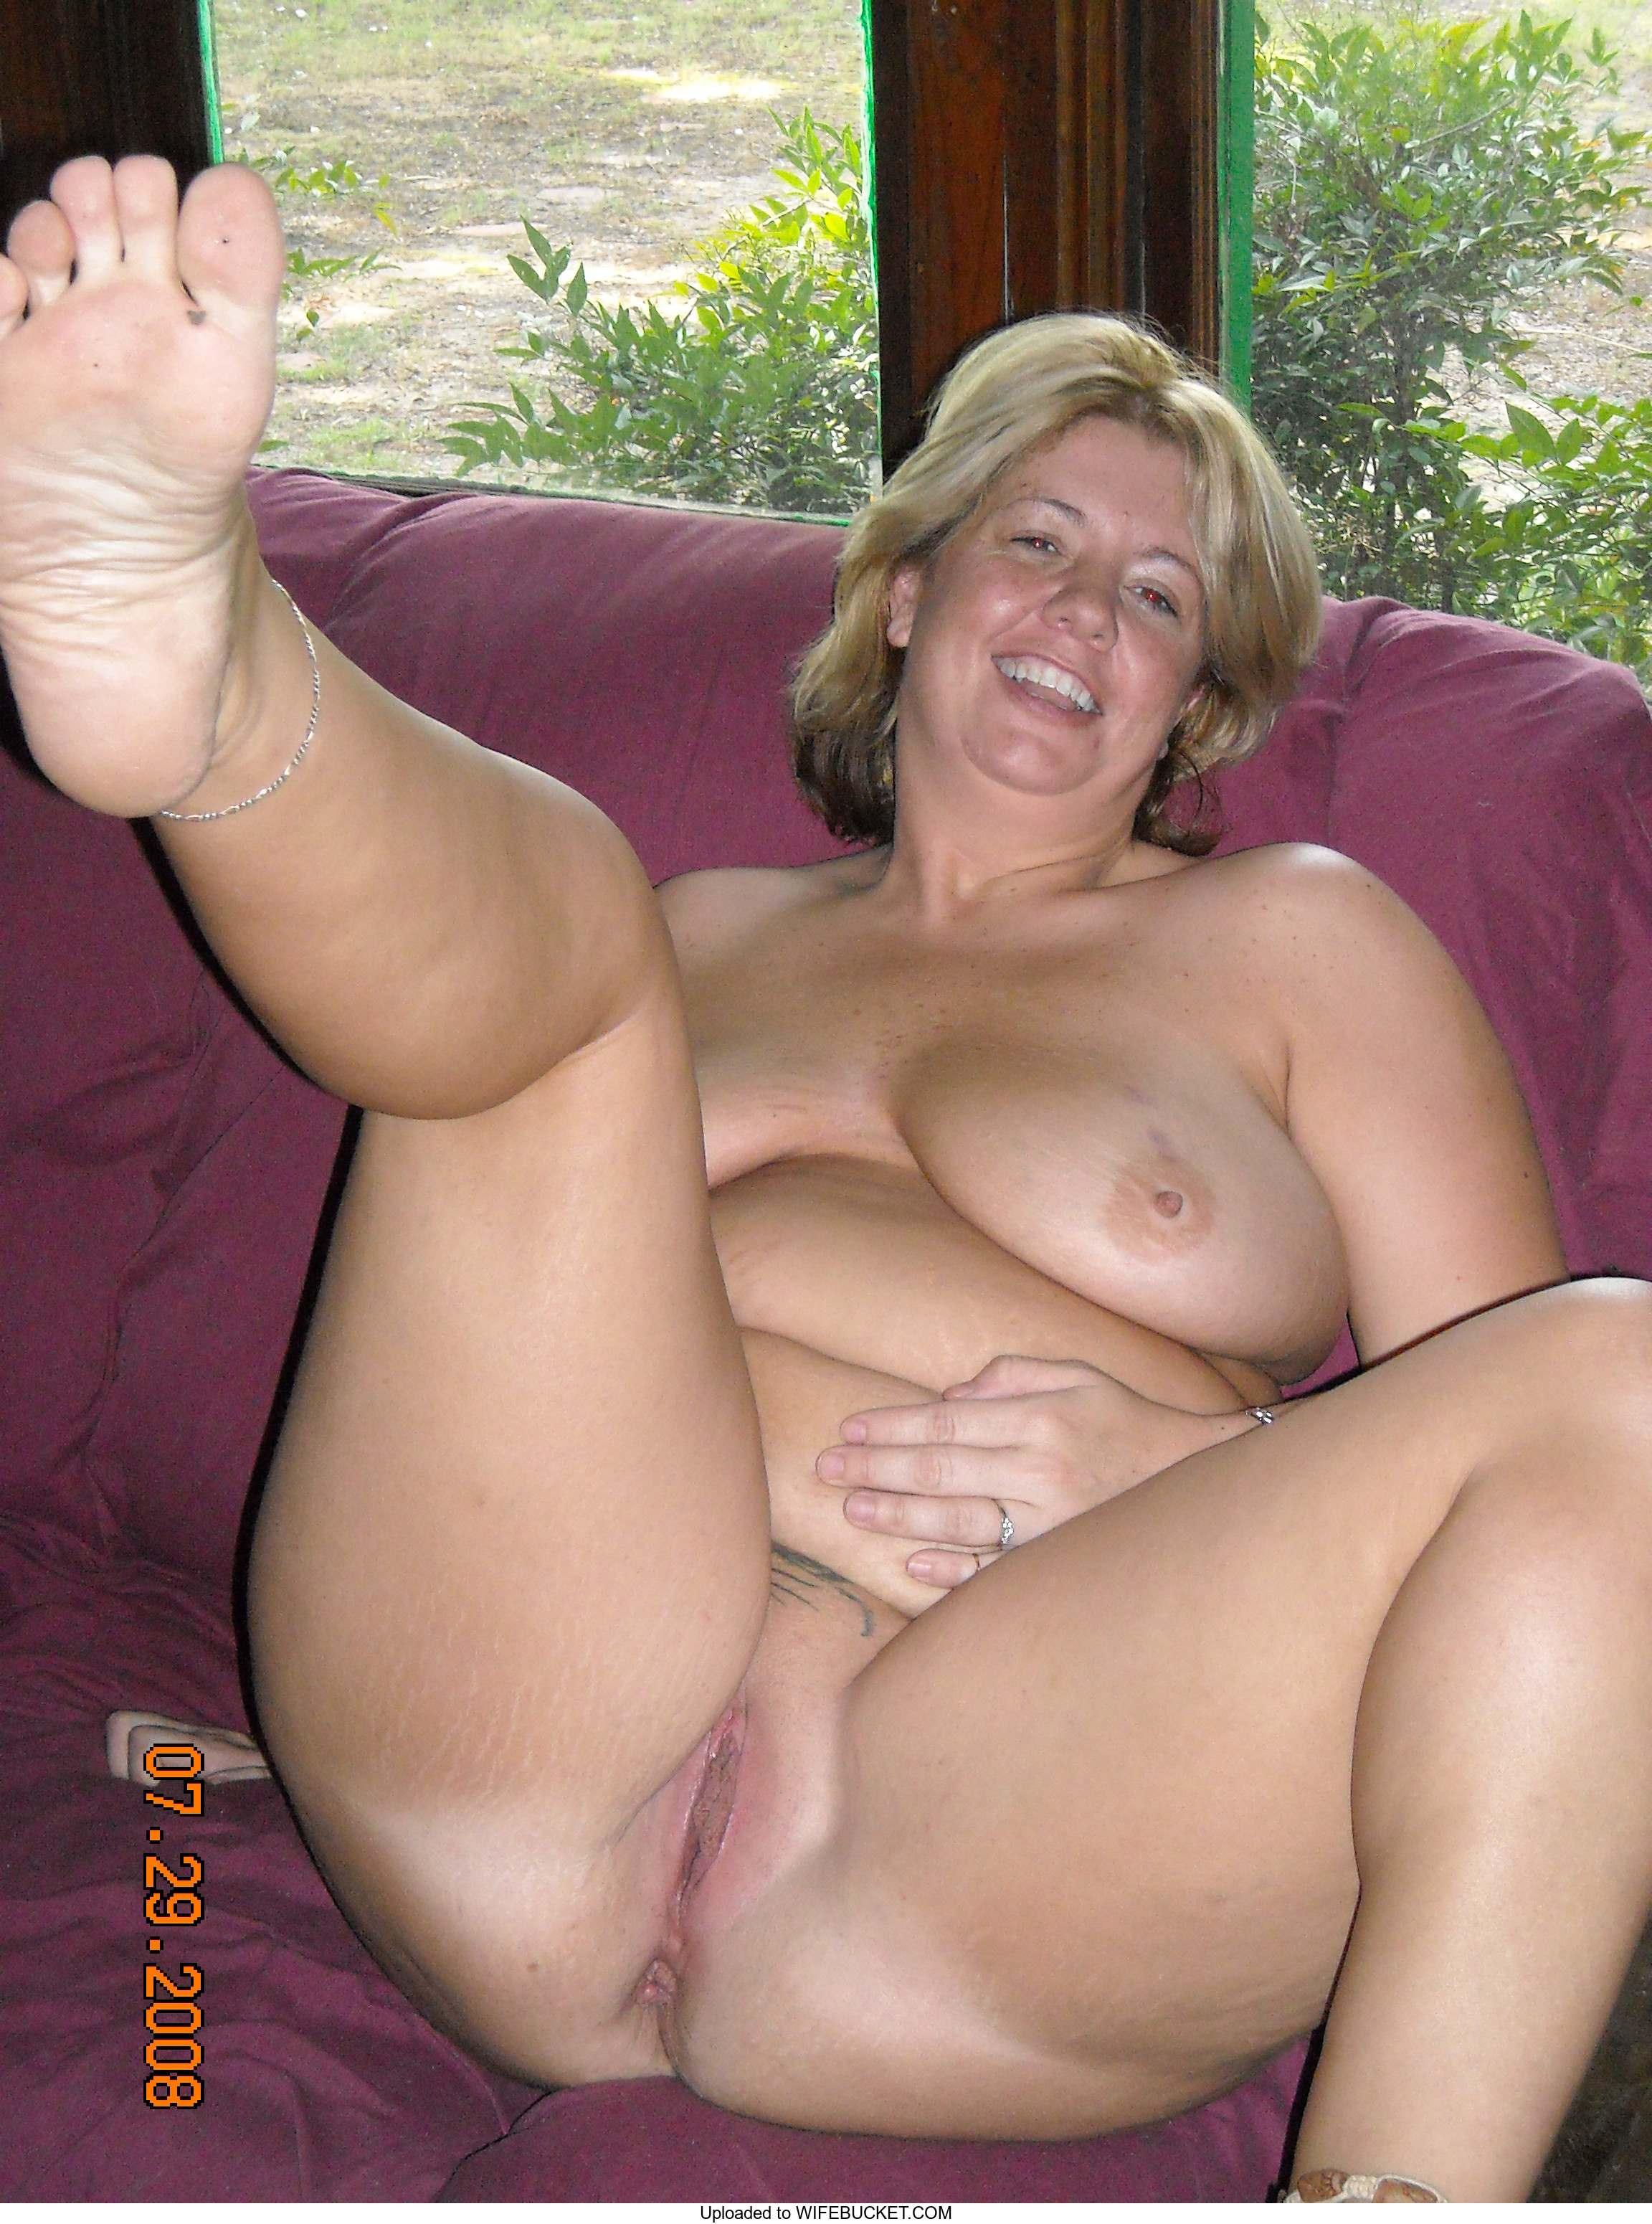 Free Mature Housewife Pics